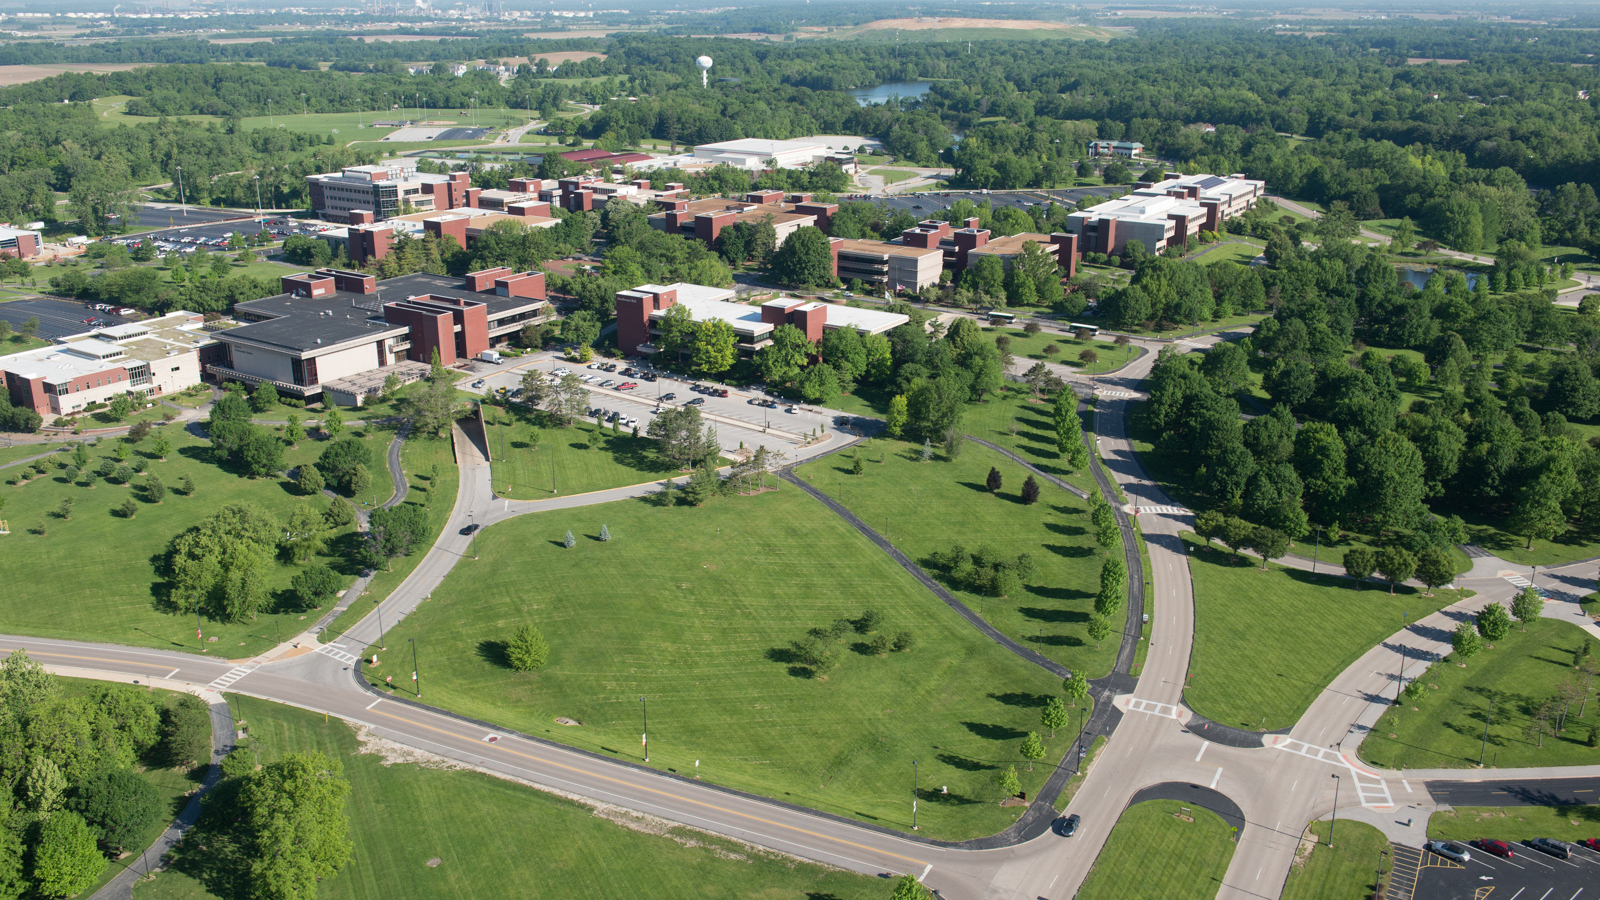 Ariel view of the SIUE campus.